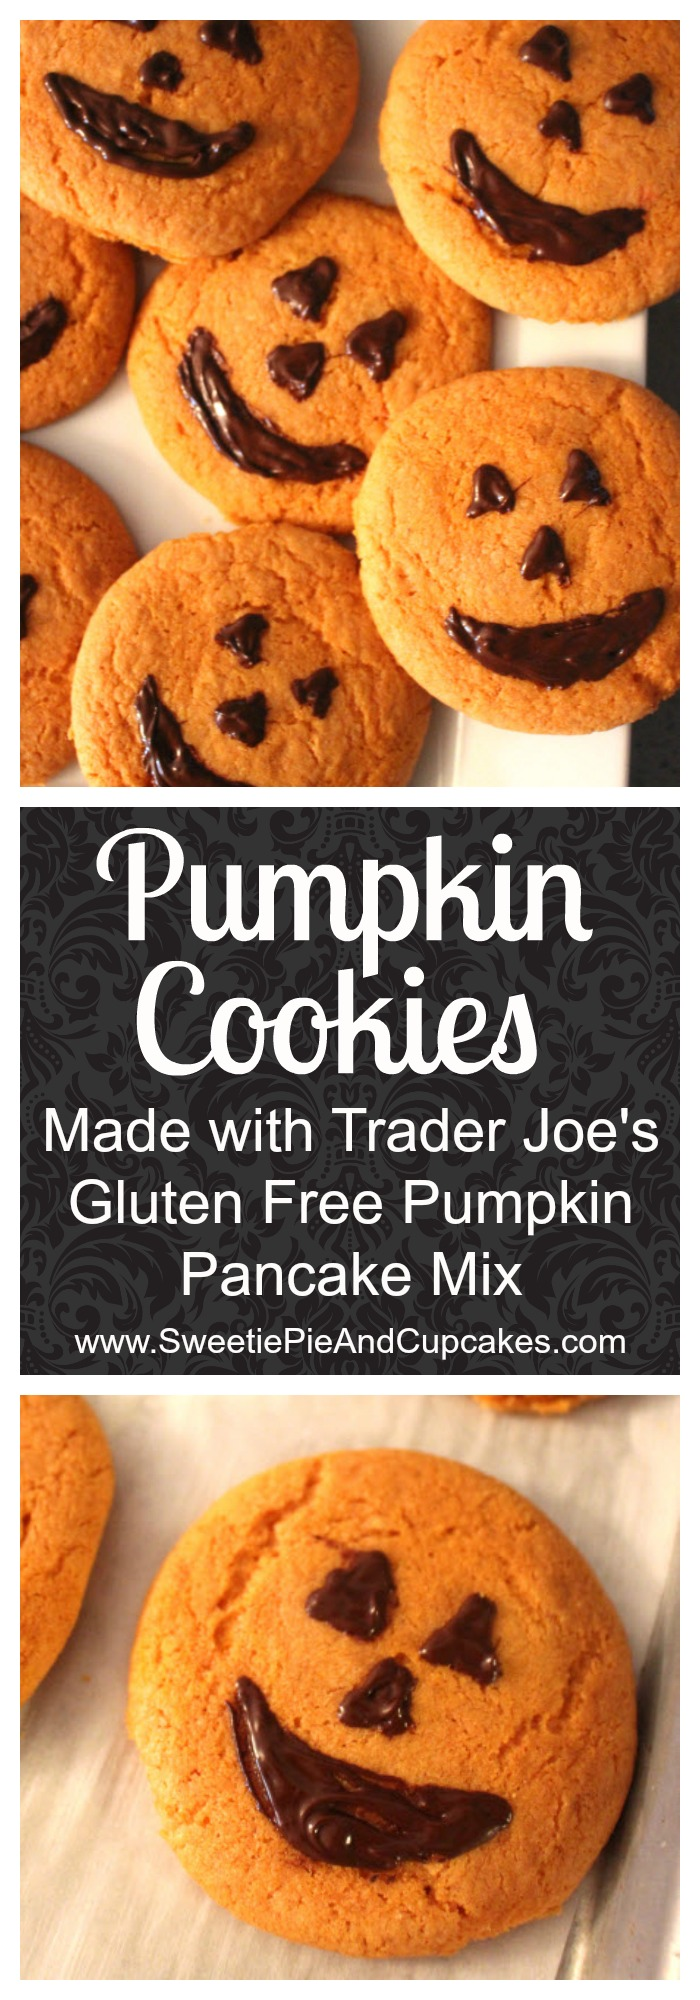 Gluten free pumpkin cookies perfect for healthy Halloween treat